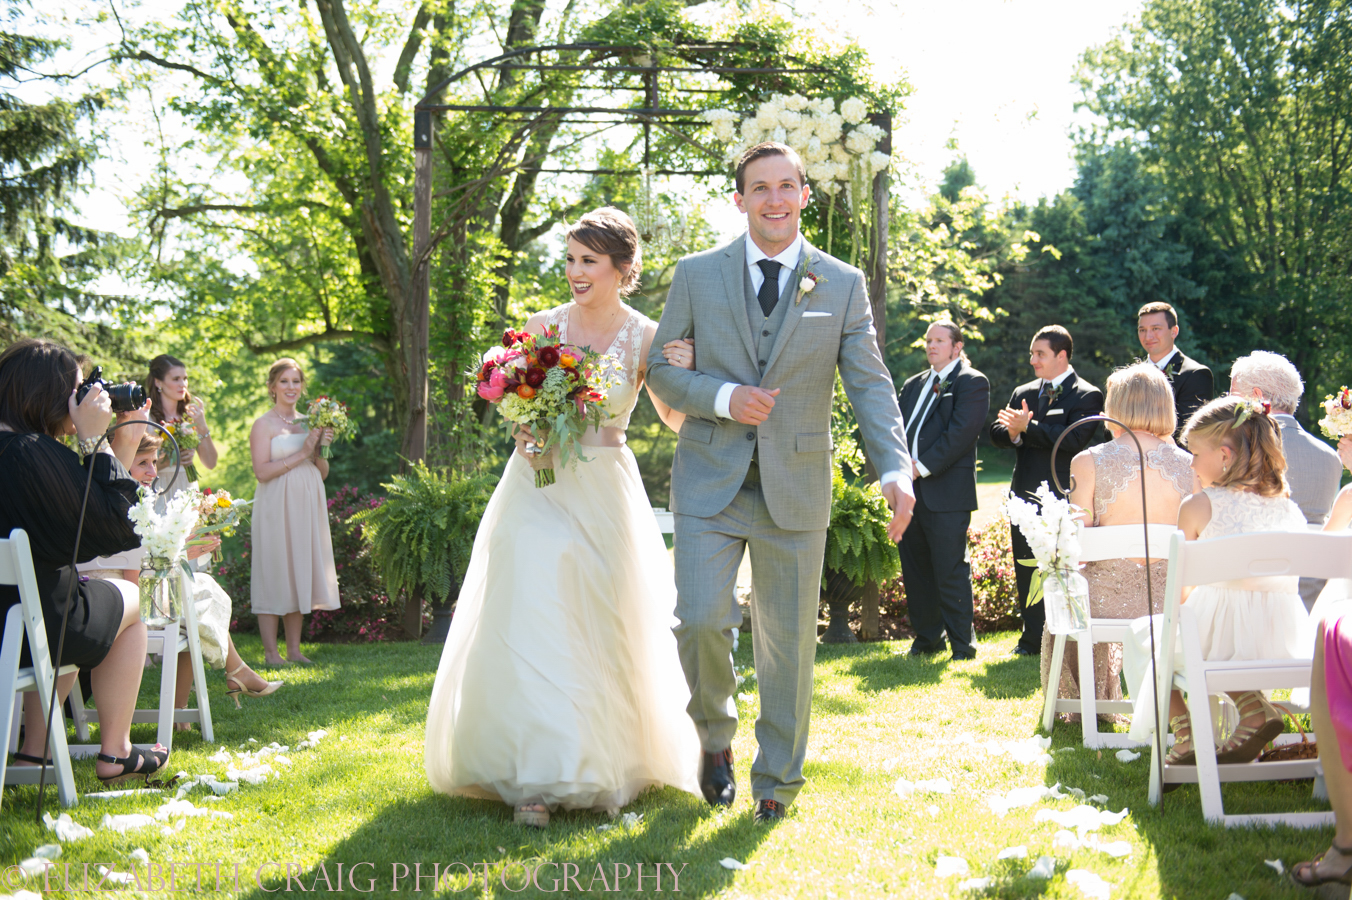 Shady Elms Farm Weddings and Receptions Elizabeth Craig Photography-0116